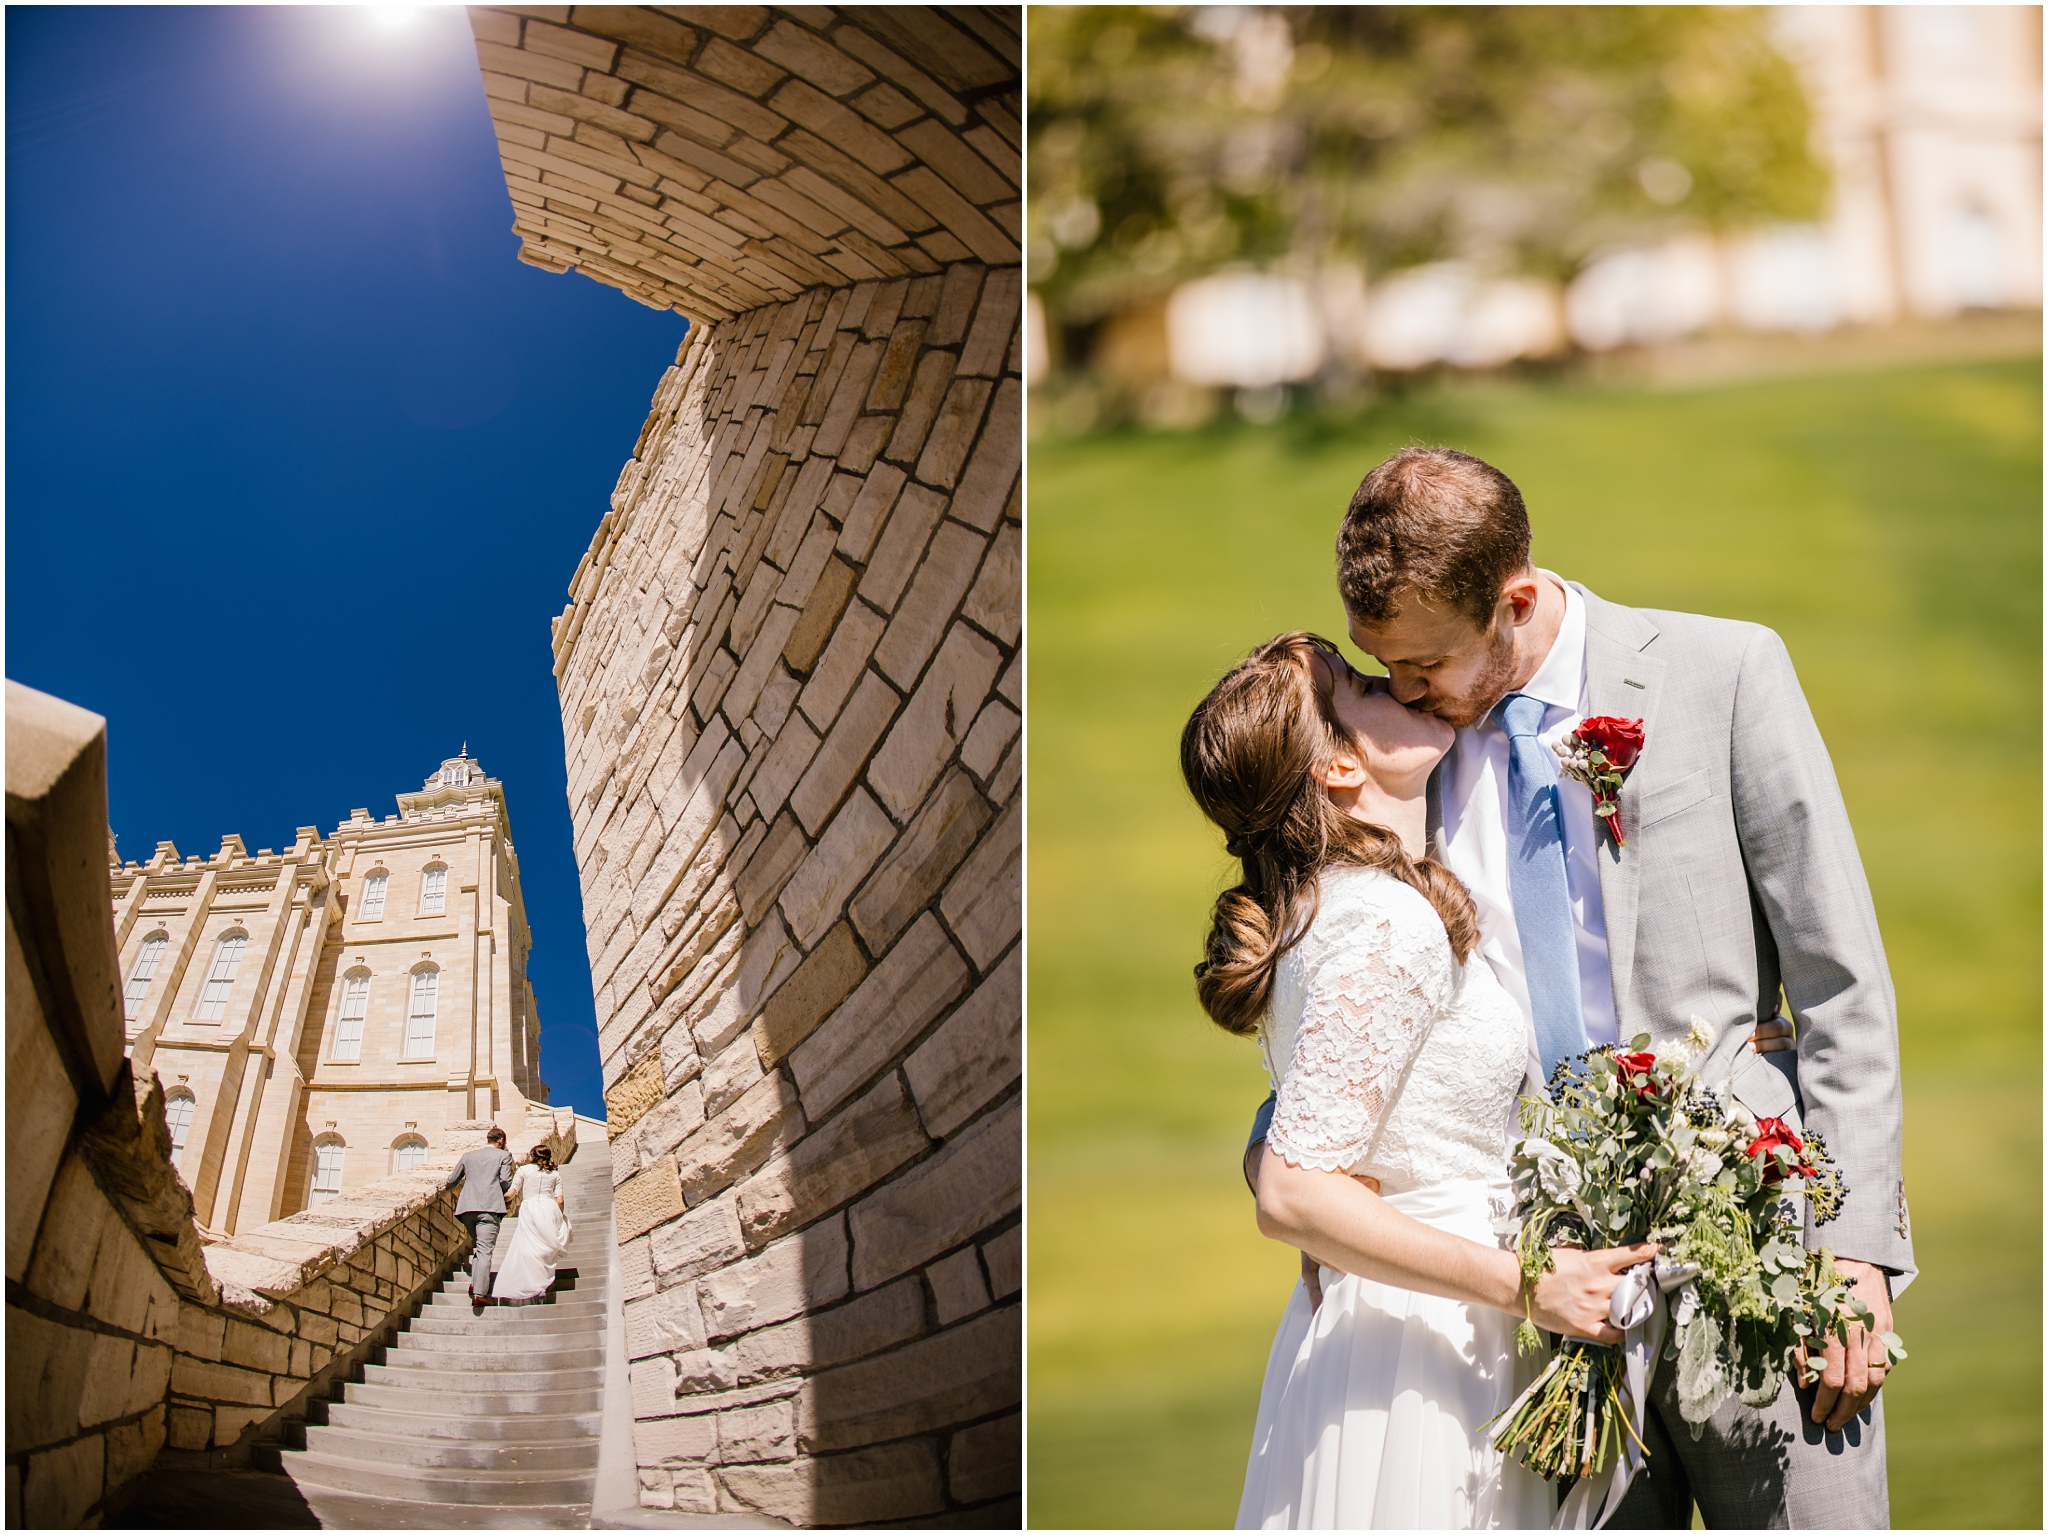 BrynneWinston-93_Lizzie-B-Imagery-Utah-Wedding-Photographer-Utah-County-Manti-Temple.jpg